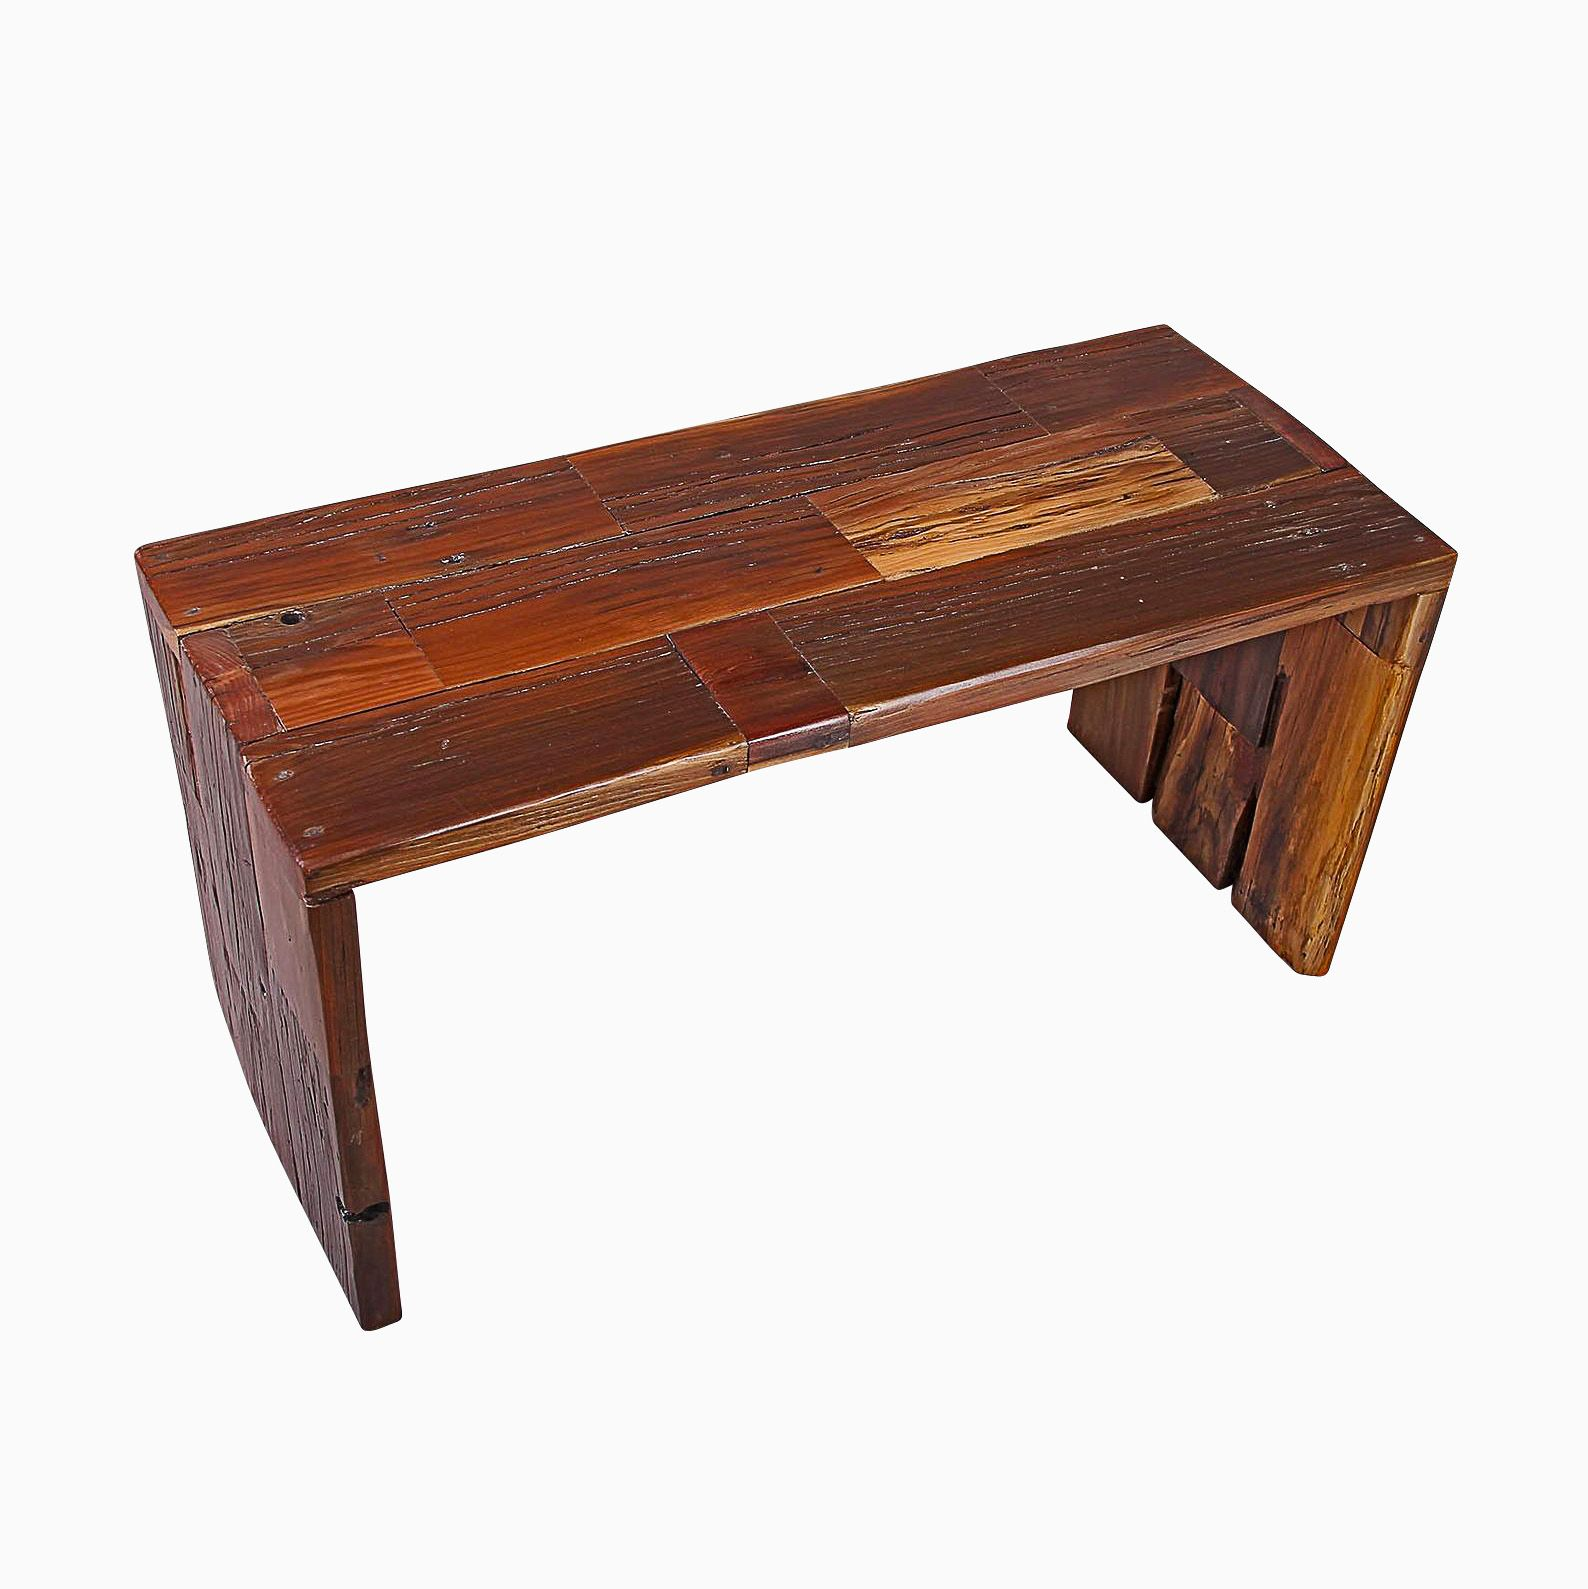 Redwood Coffee Table: Buy A Hand Crafted Reclaimed Redwood Coffee Table Or Bench